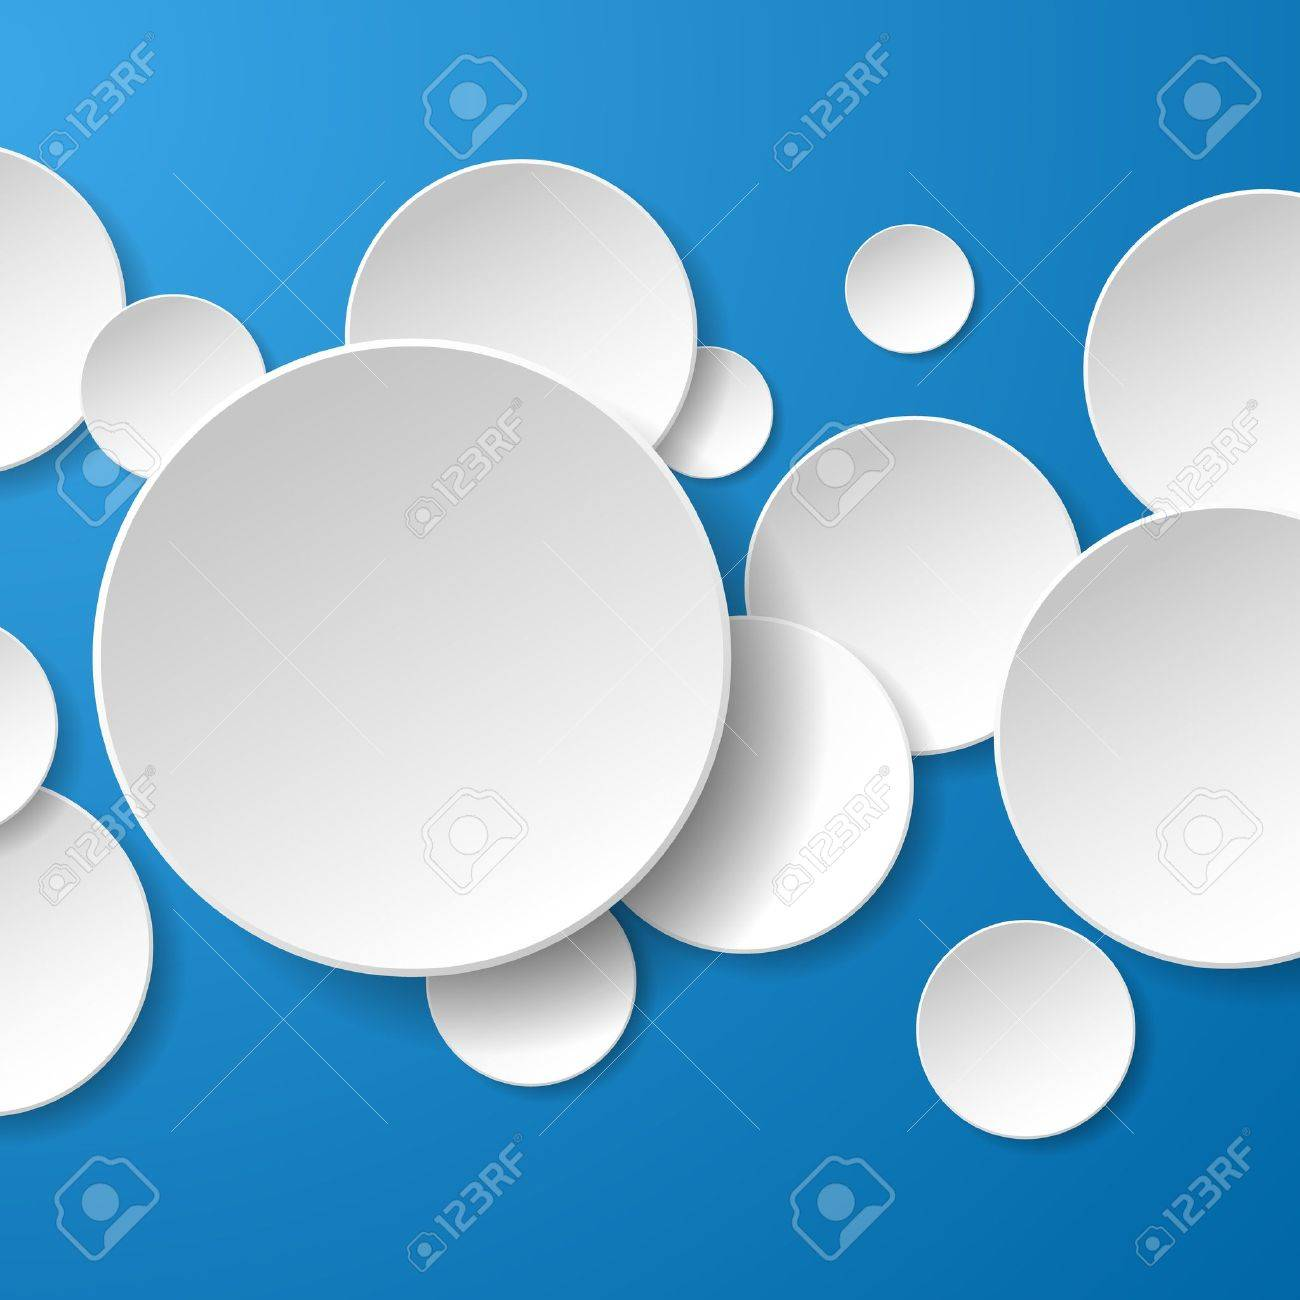 Abstract white paper circles on blue background. Stock Vector - 18991585